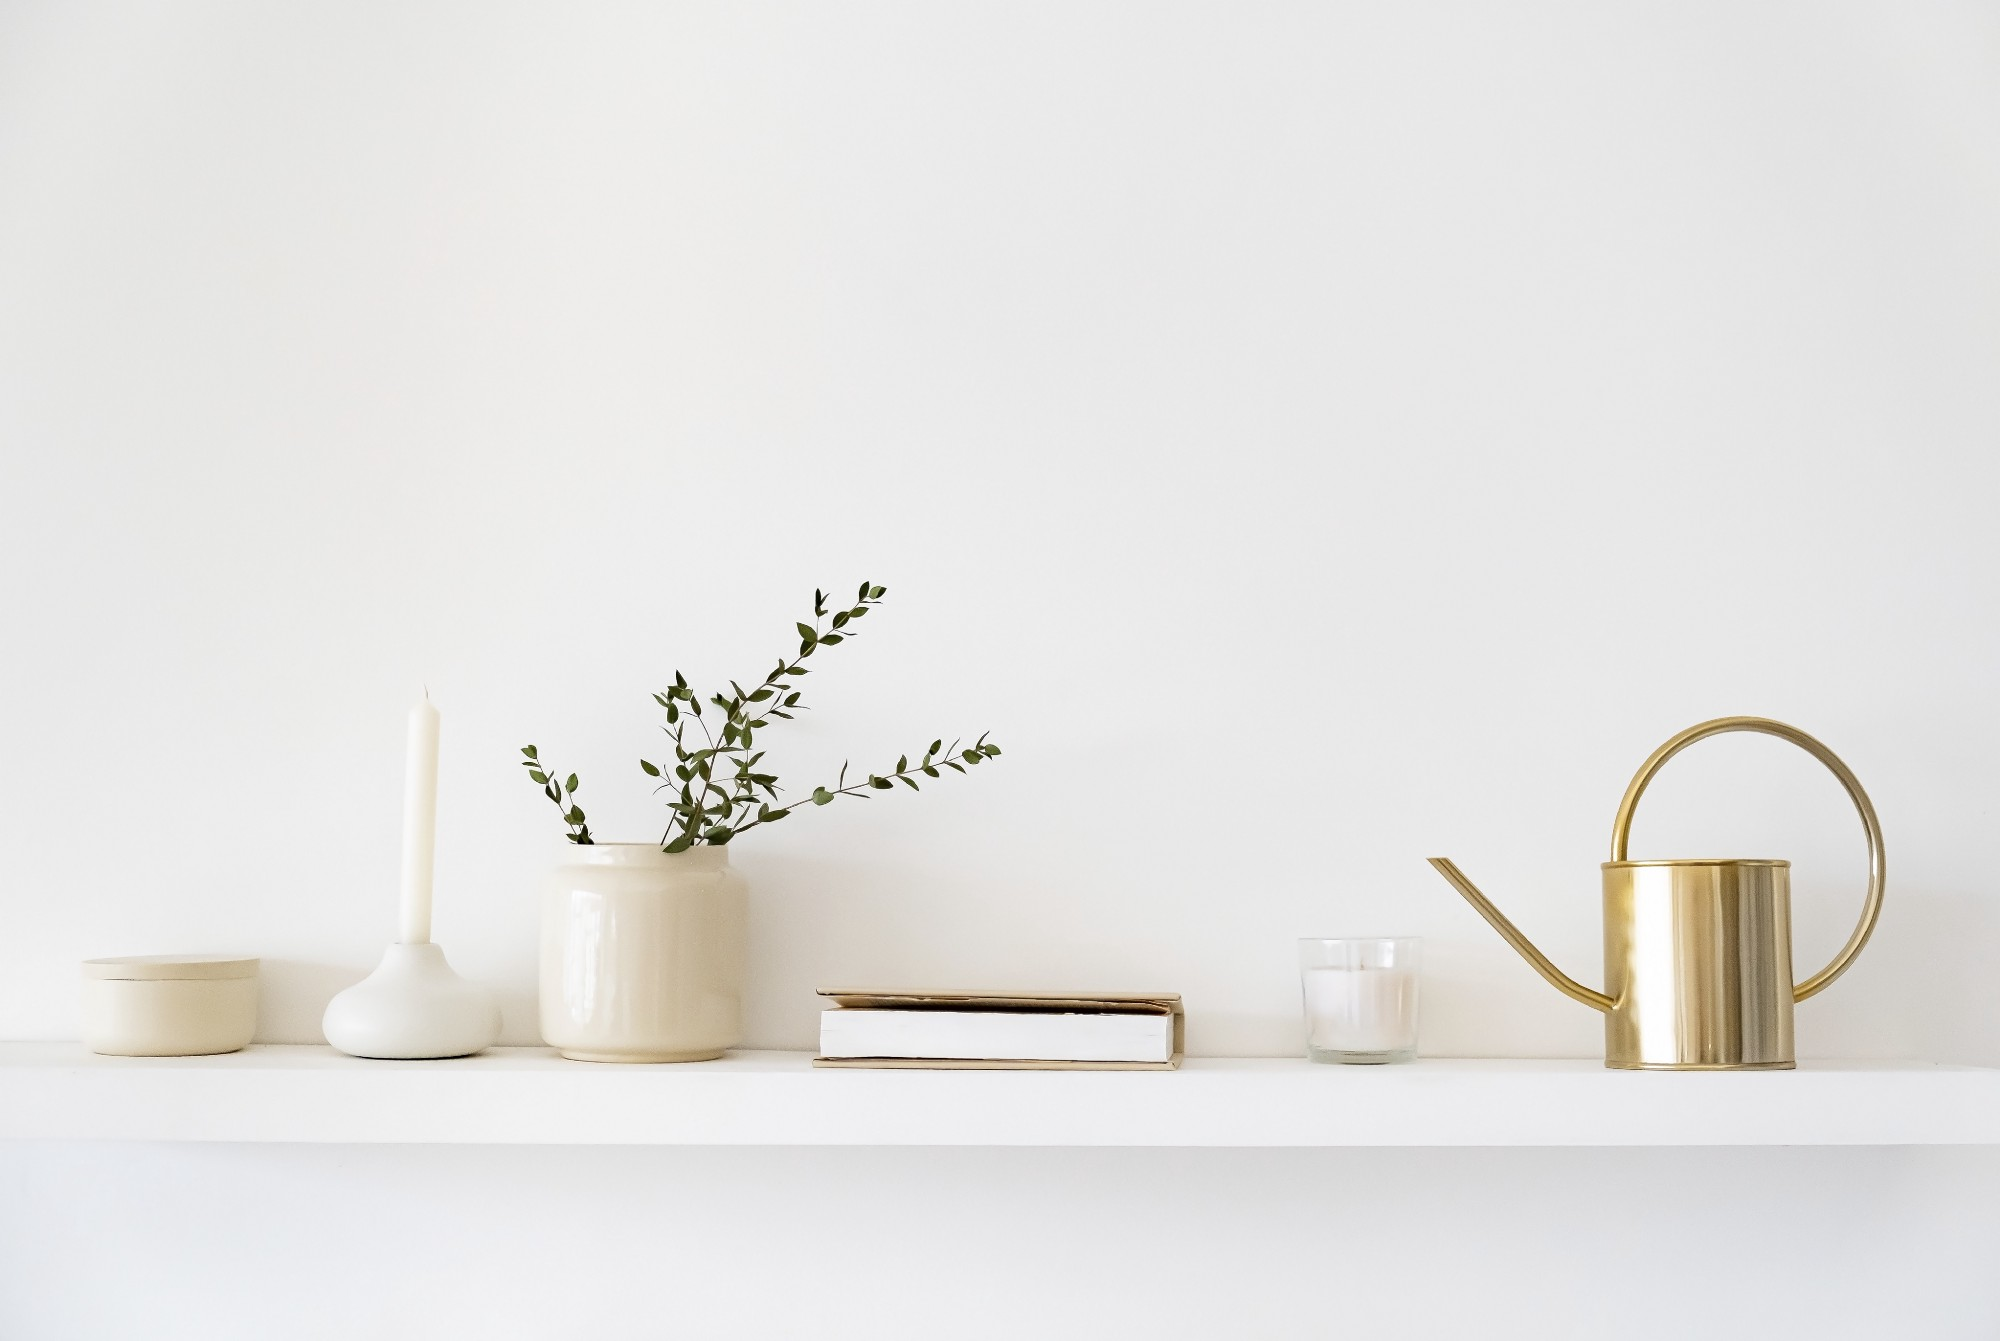 Minimalistic scandinavian interior. dishes on white shelves. white details in the interior